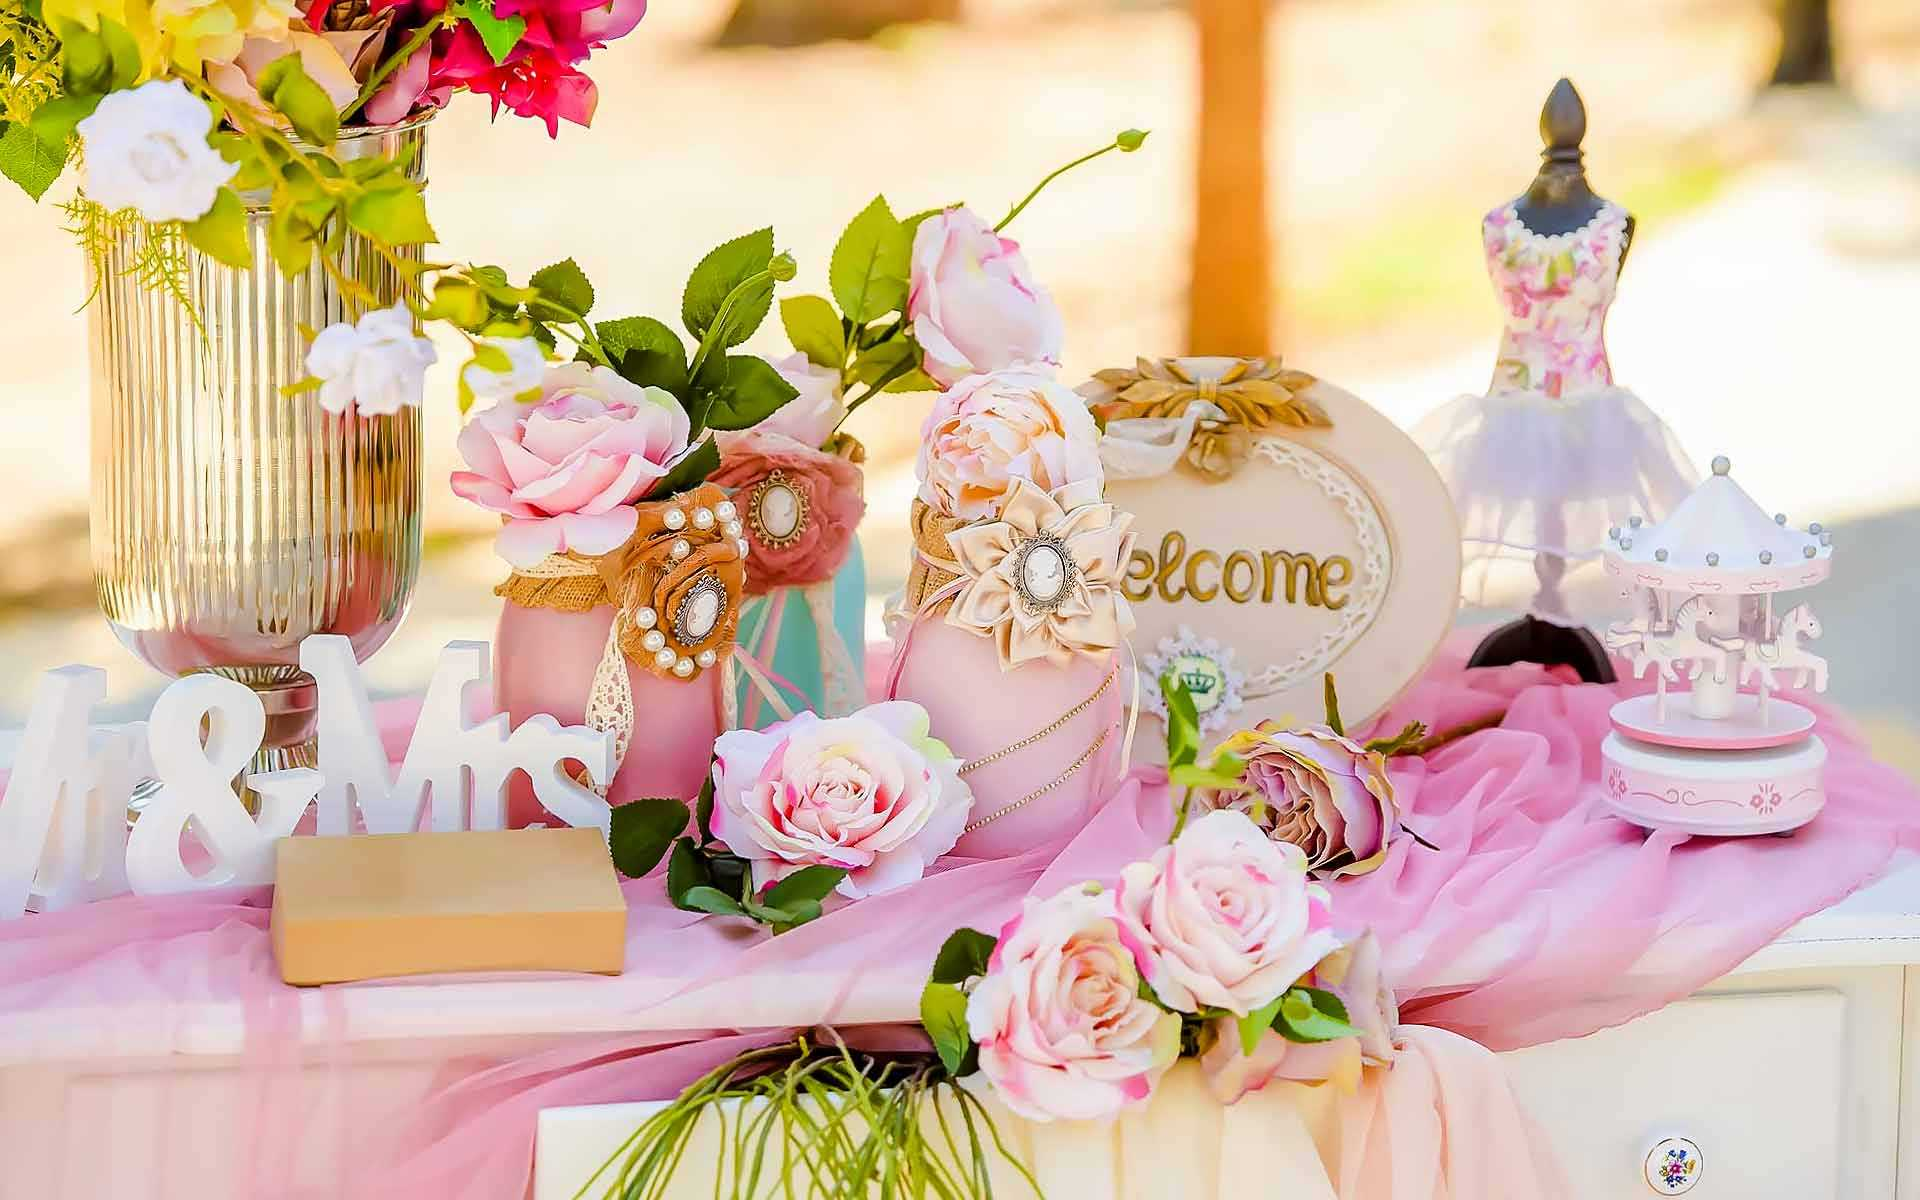 Baptismal-Decor-That-Sets-The-Scene-Of-Ballerinas-And-Carousels